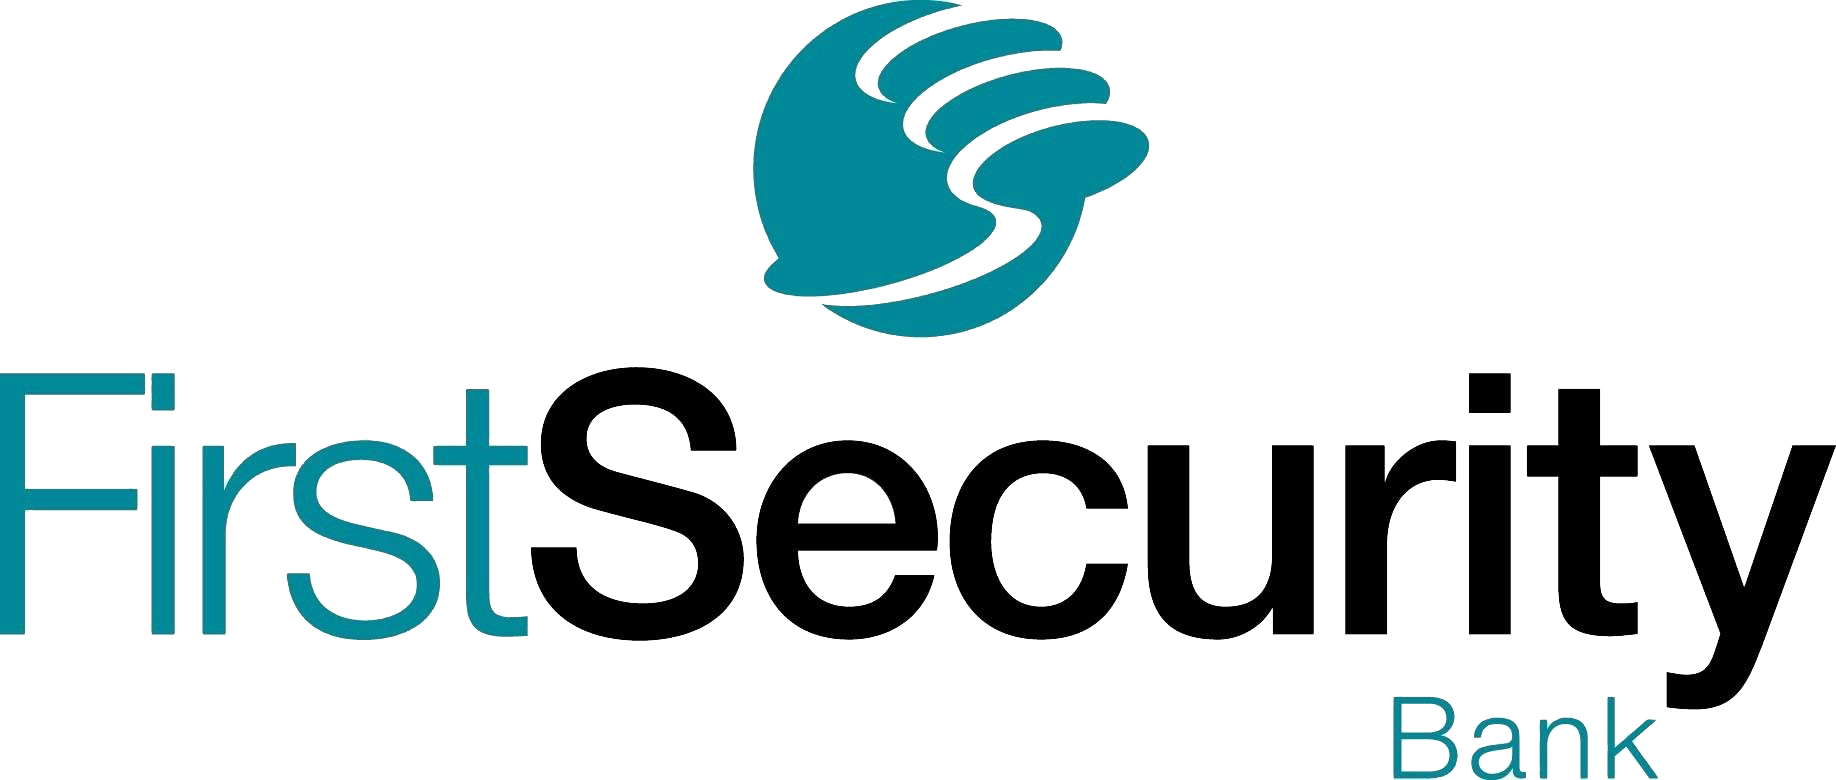 firstsecuritybank-732x311.jpg